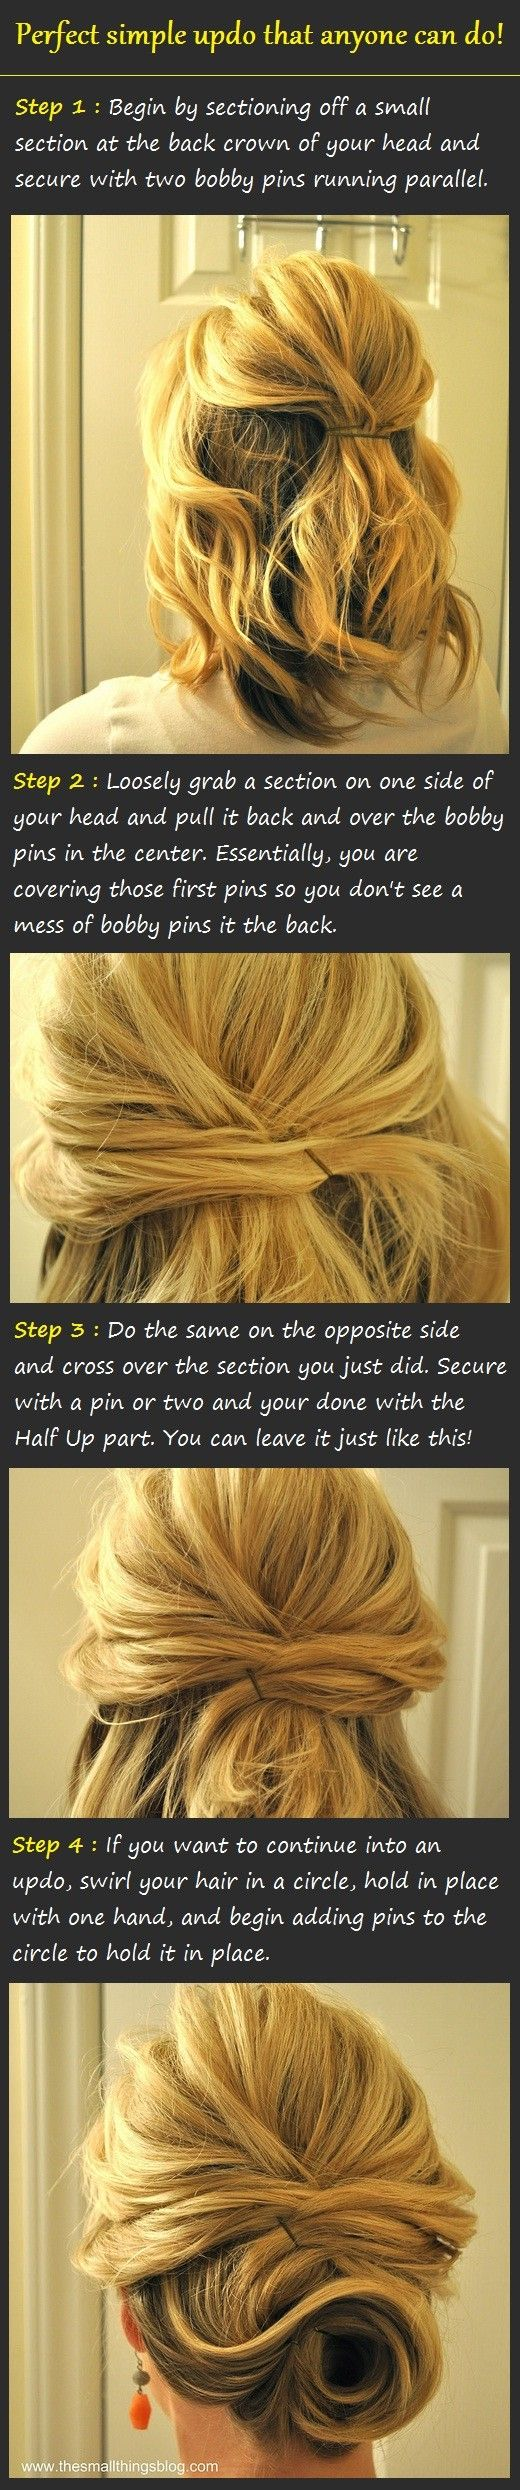 Finally a short hair updo that anyone can do! and it doesn't involve curling my non-curl able hair!